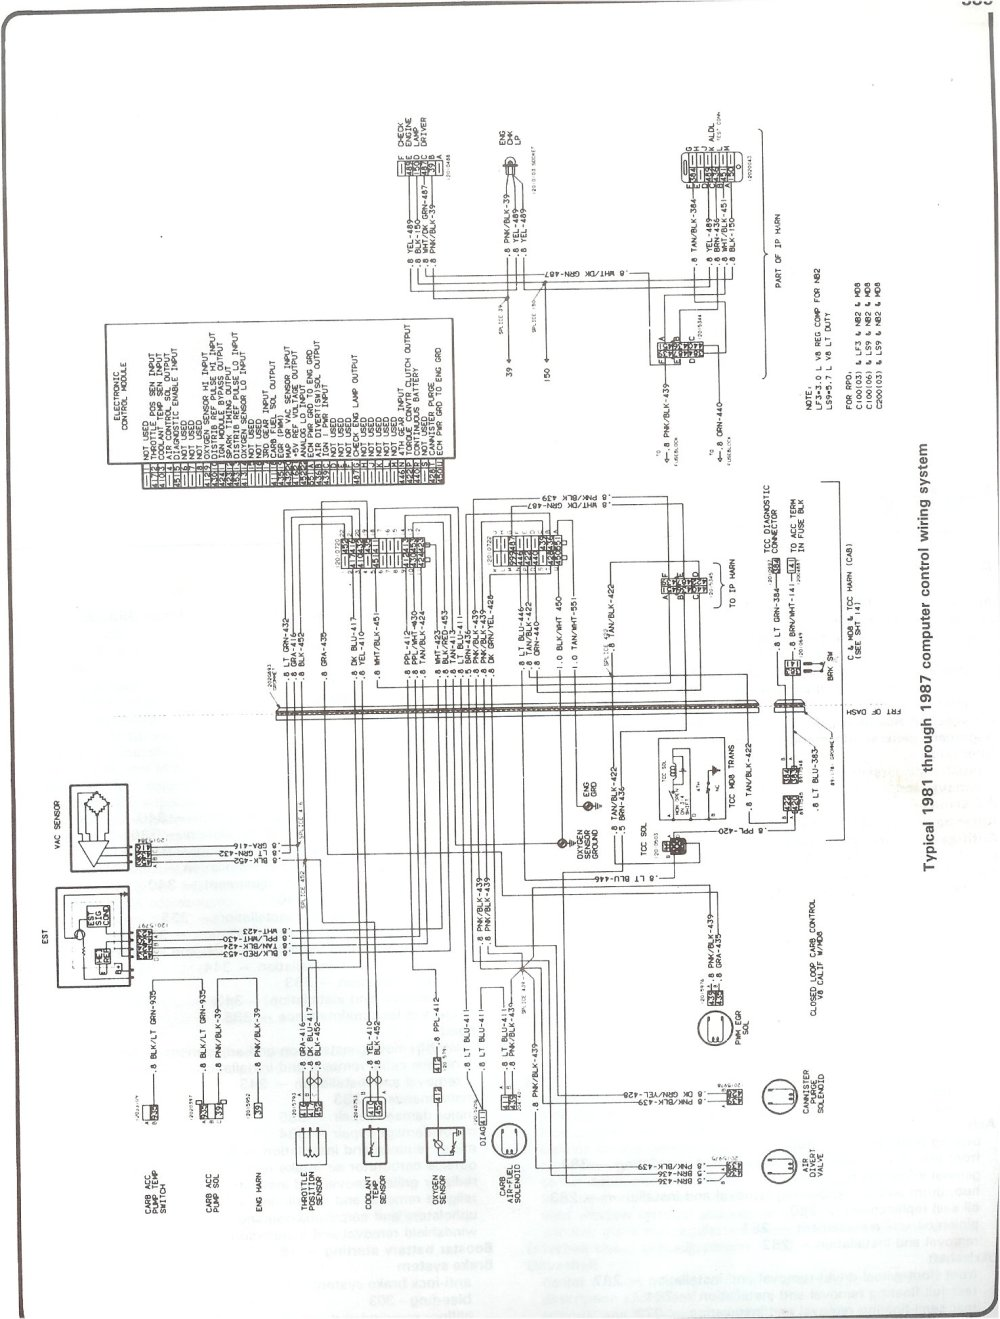 medium resolution of 1976 chevy 350 wiring diagram simple wiring diagrams 1 wire alternator wiring diagram for 1970 chevy truck 1975 chevy wiring diagram 350